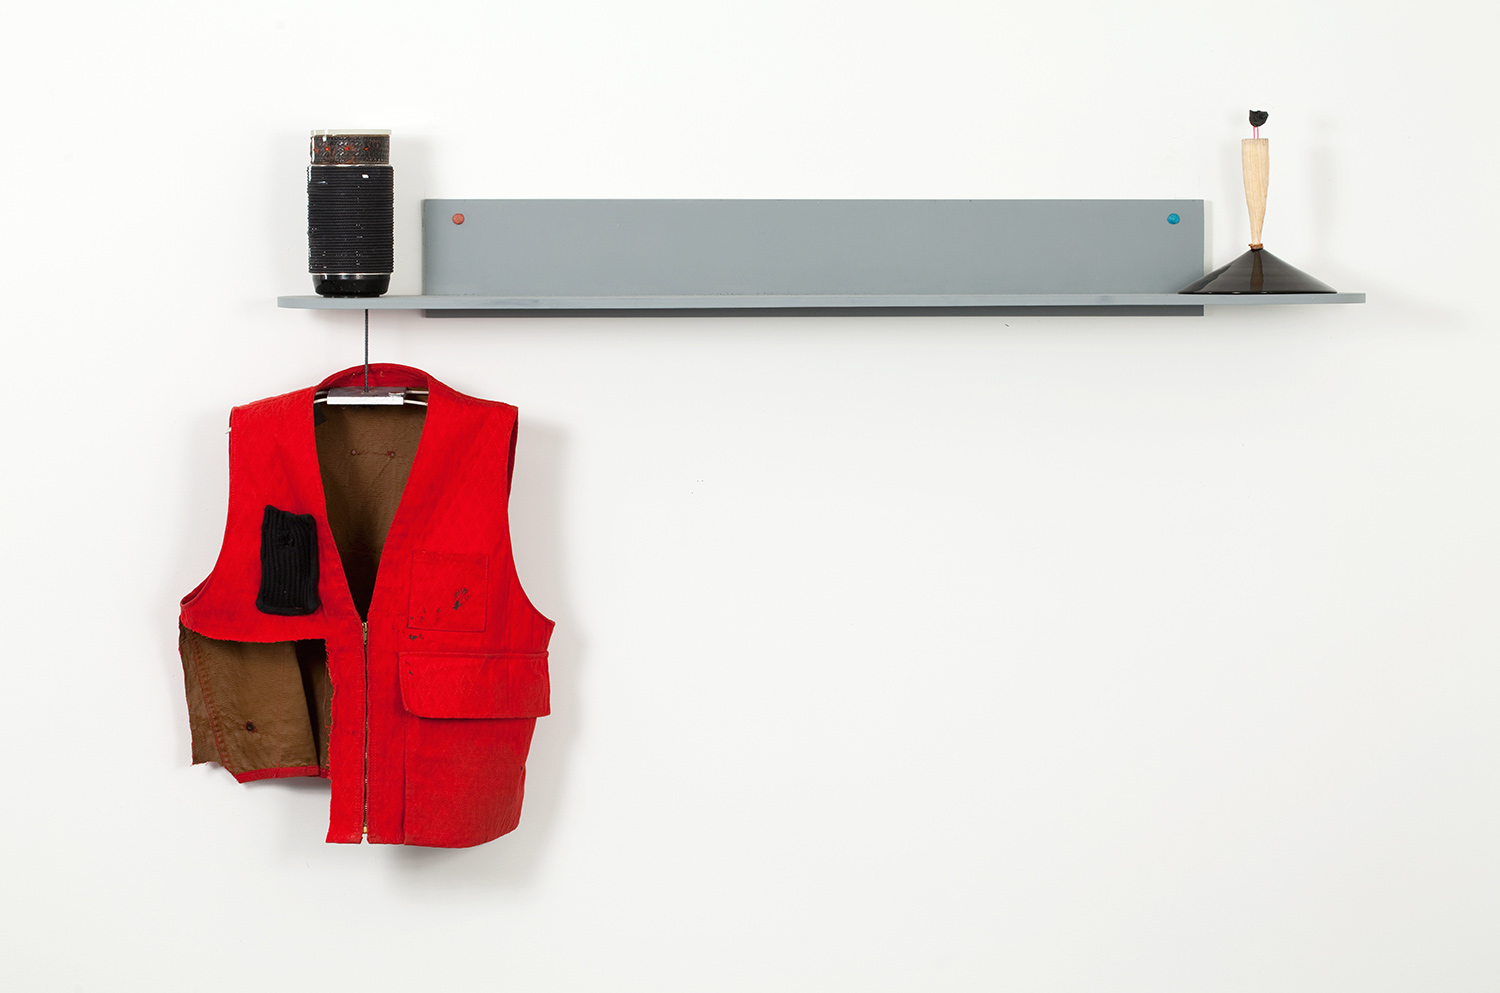 """The Resistants' Game Piece . Resistants' game bell: glass, oak, carrot, thumb from Labor Boss glove, eyebrow hair, stolen aluminum rod, plaster, copper. 37"""" x 54"""" x 9.5"""". 2009."""